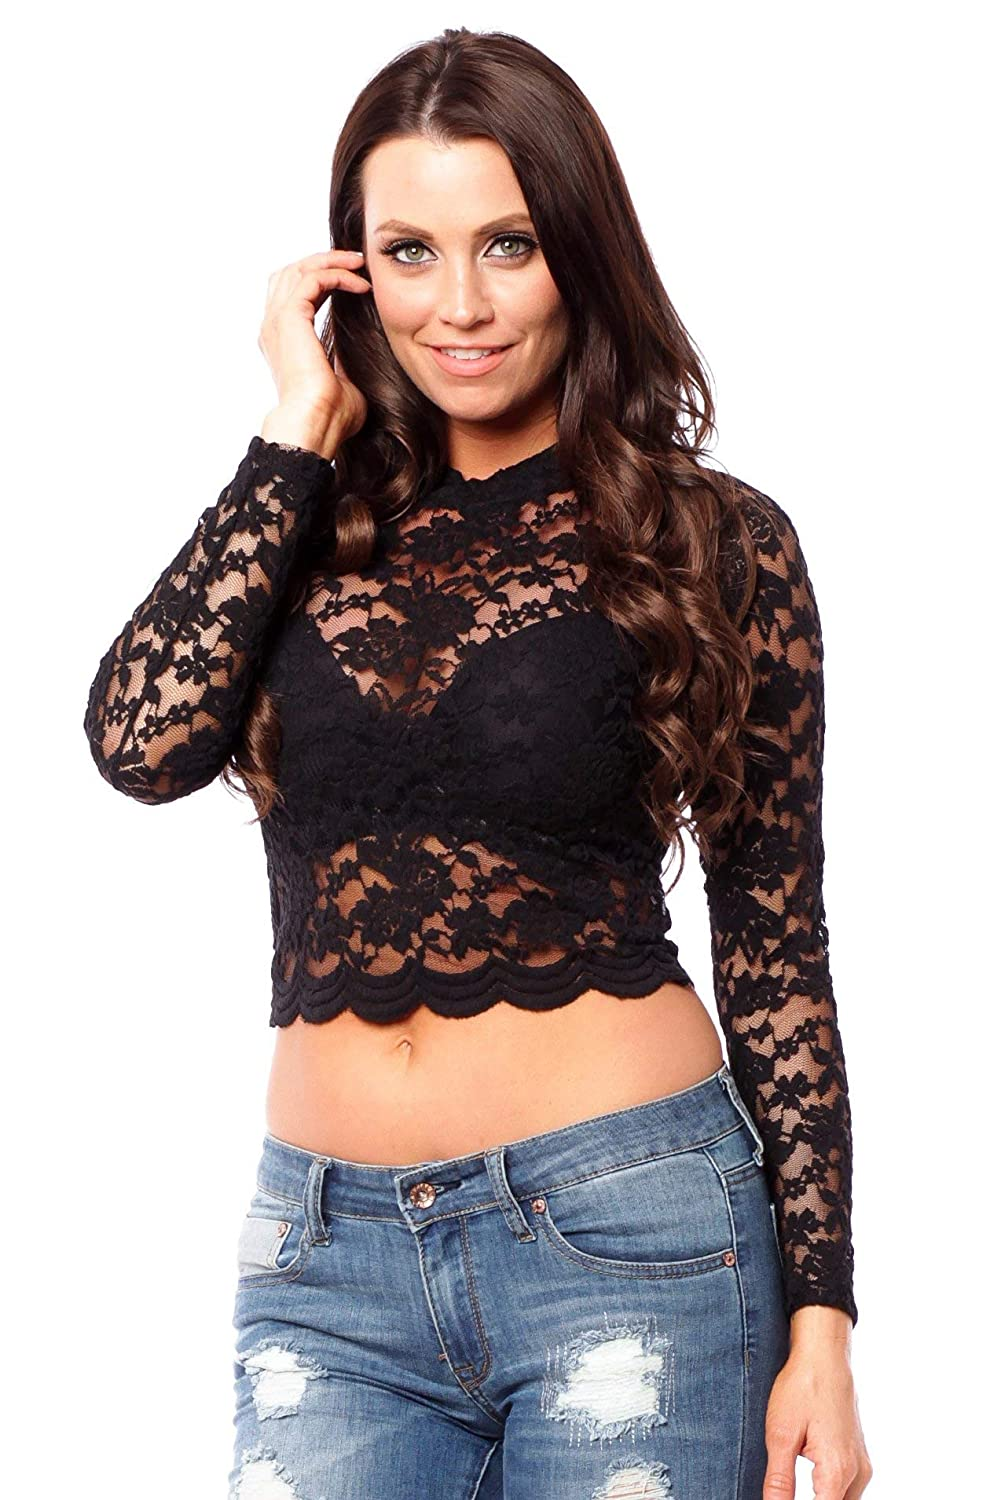 d10d7acc7a4 Hollywood Star Fashion Long Sleeve Lace Mock Neck Crop Top at Amazon  Women's Clothing store: